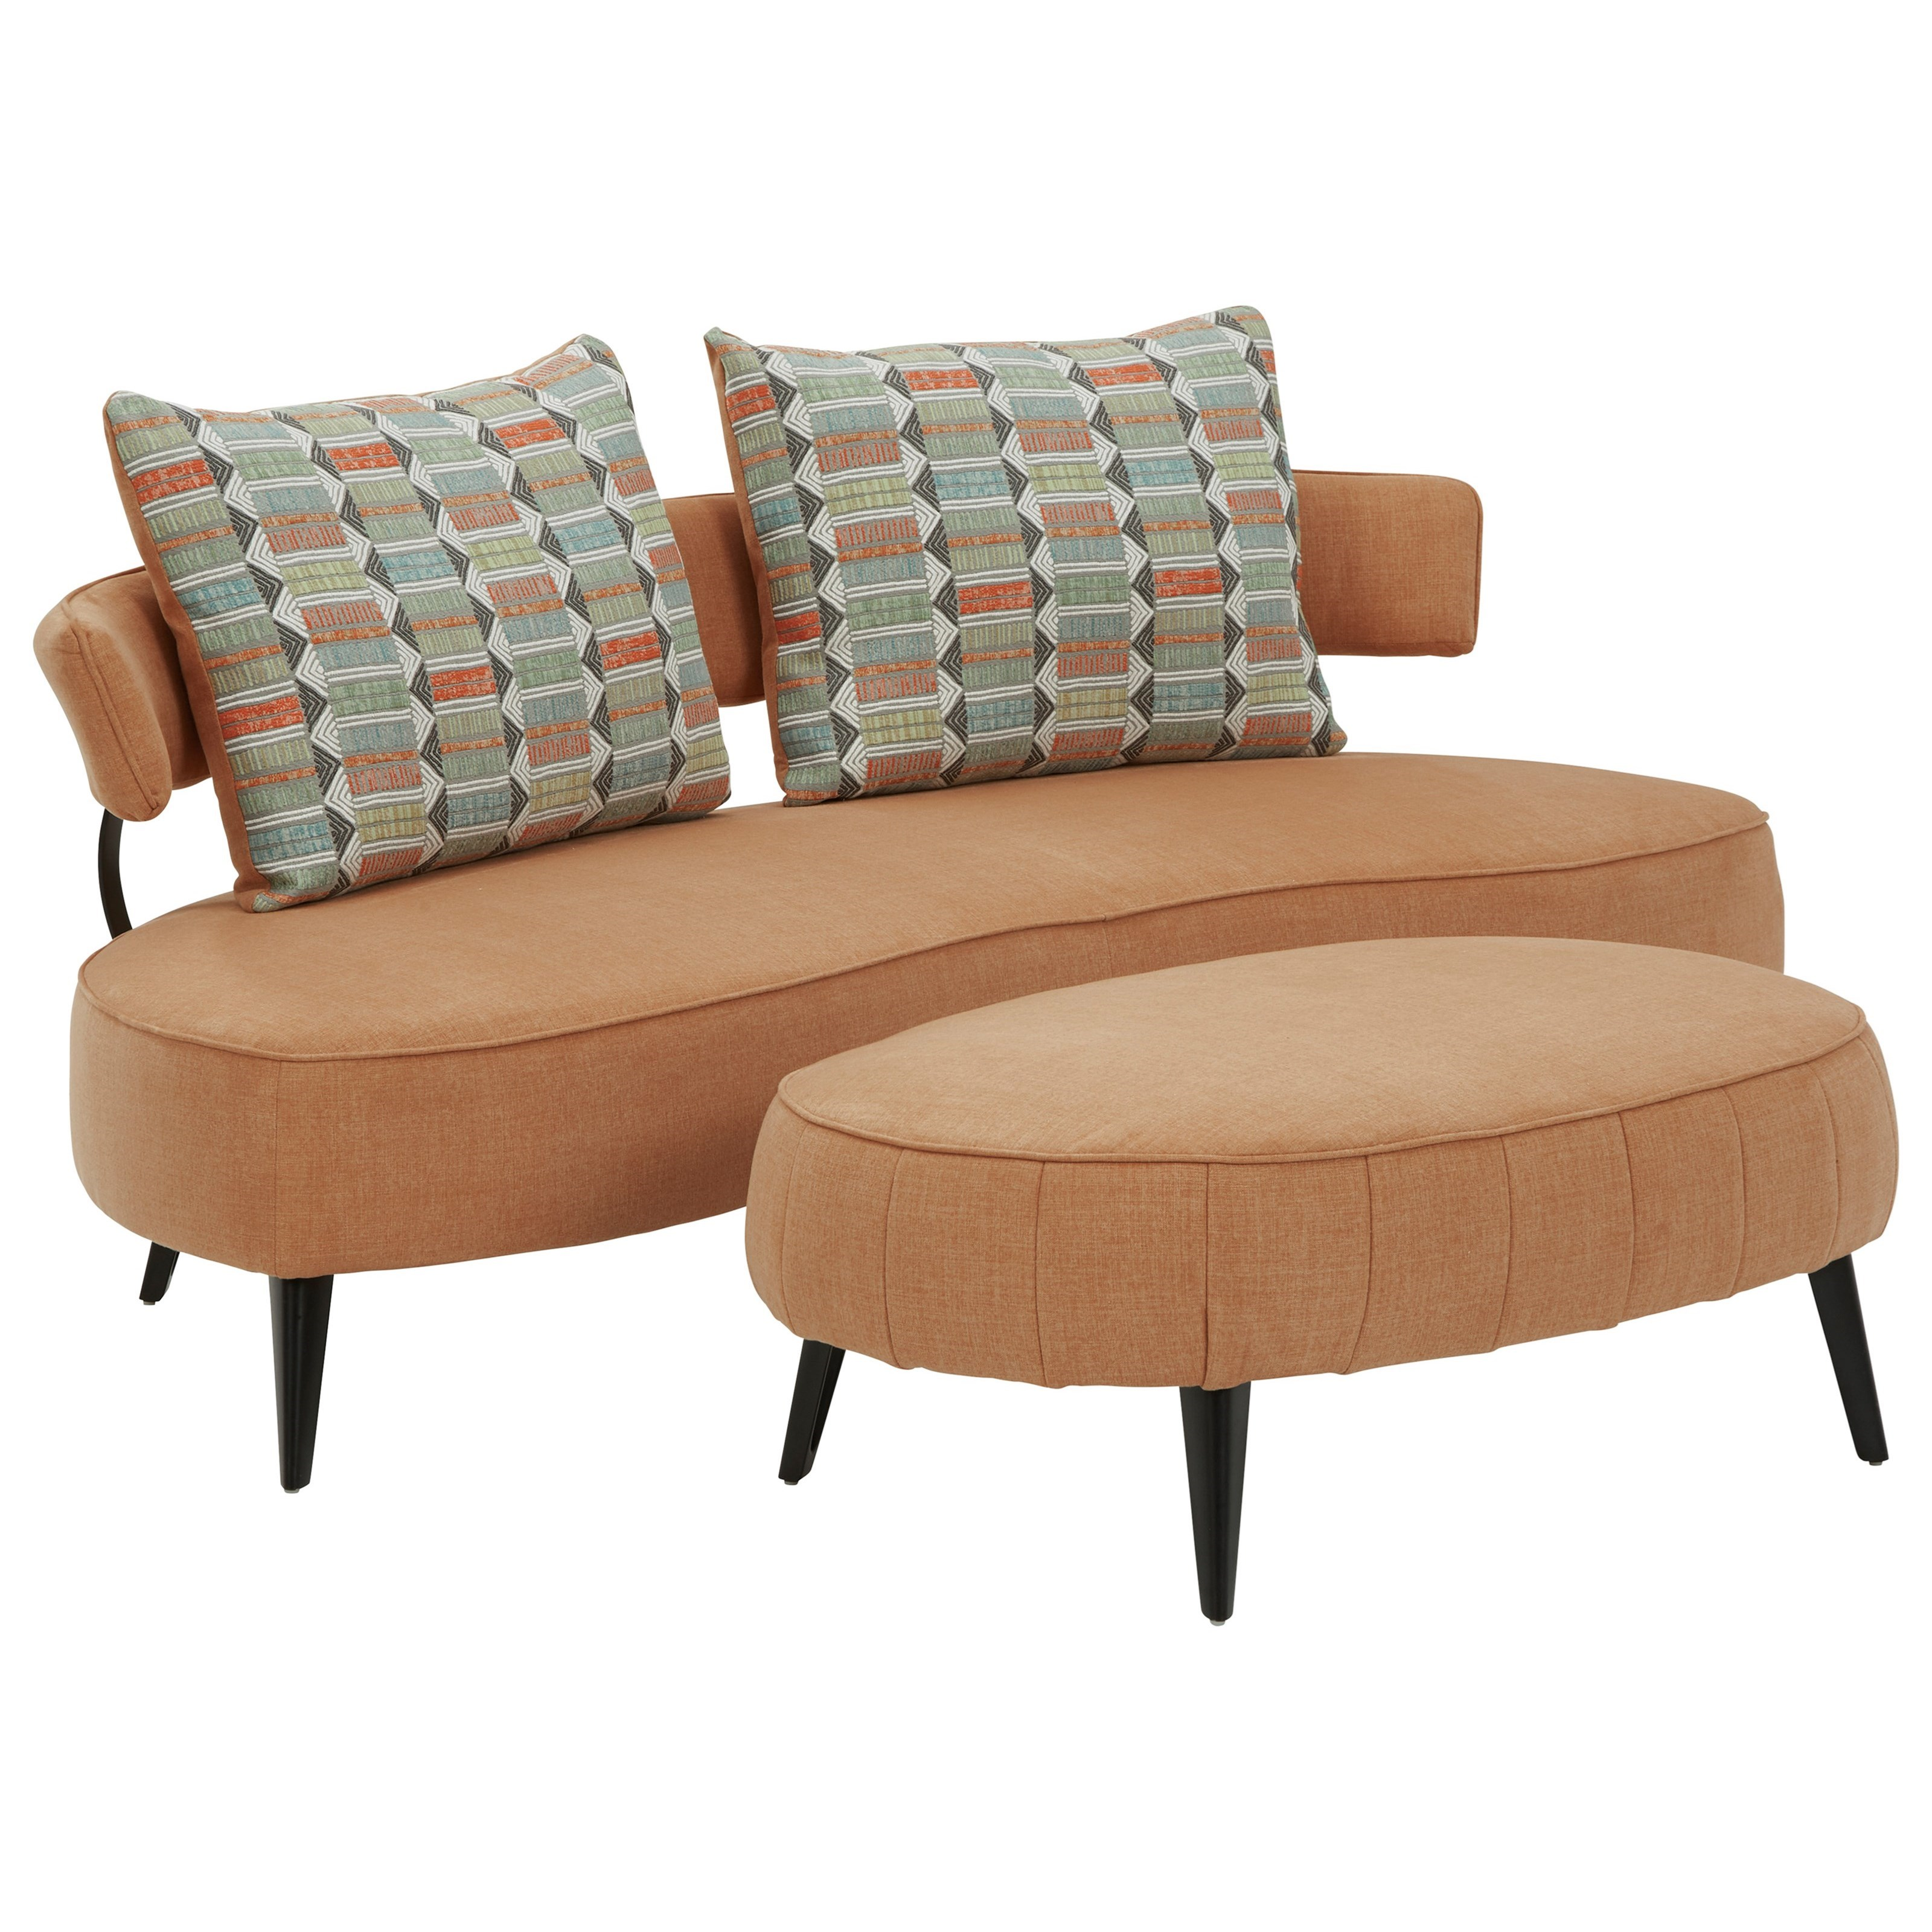 Hollyann Living Room Group by Ashley (Signature Design) at Johnny Janosik